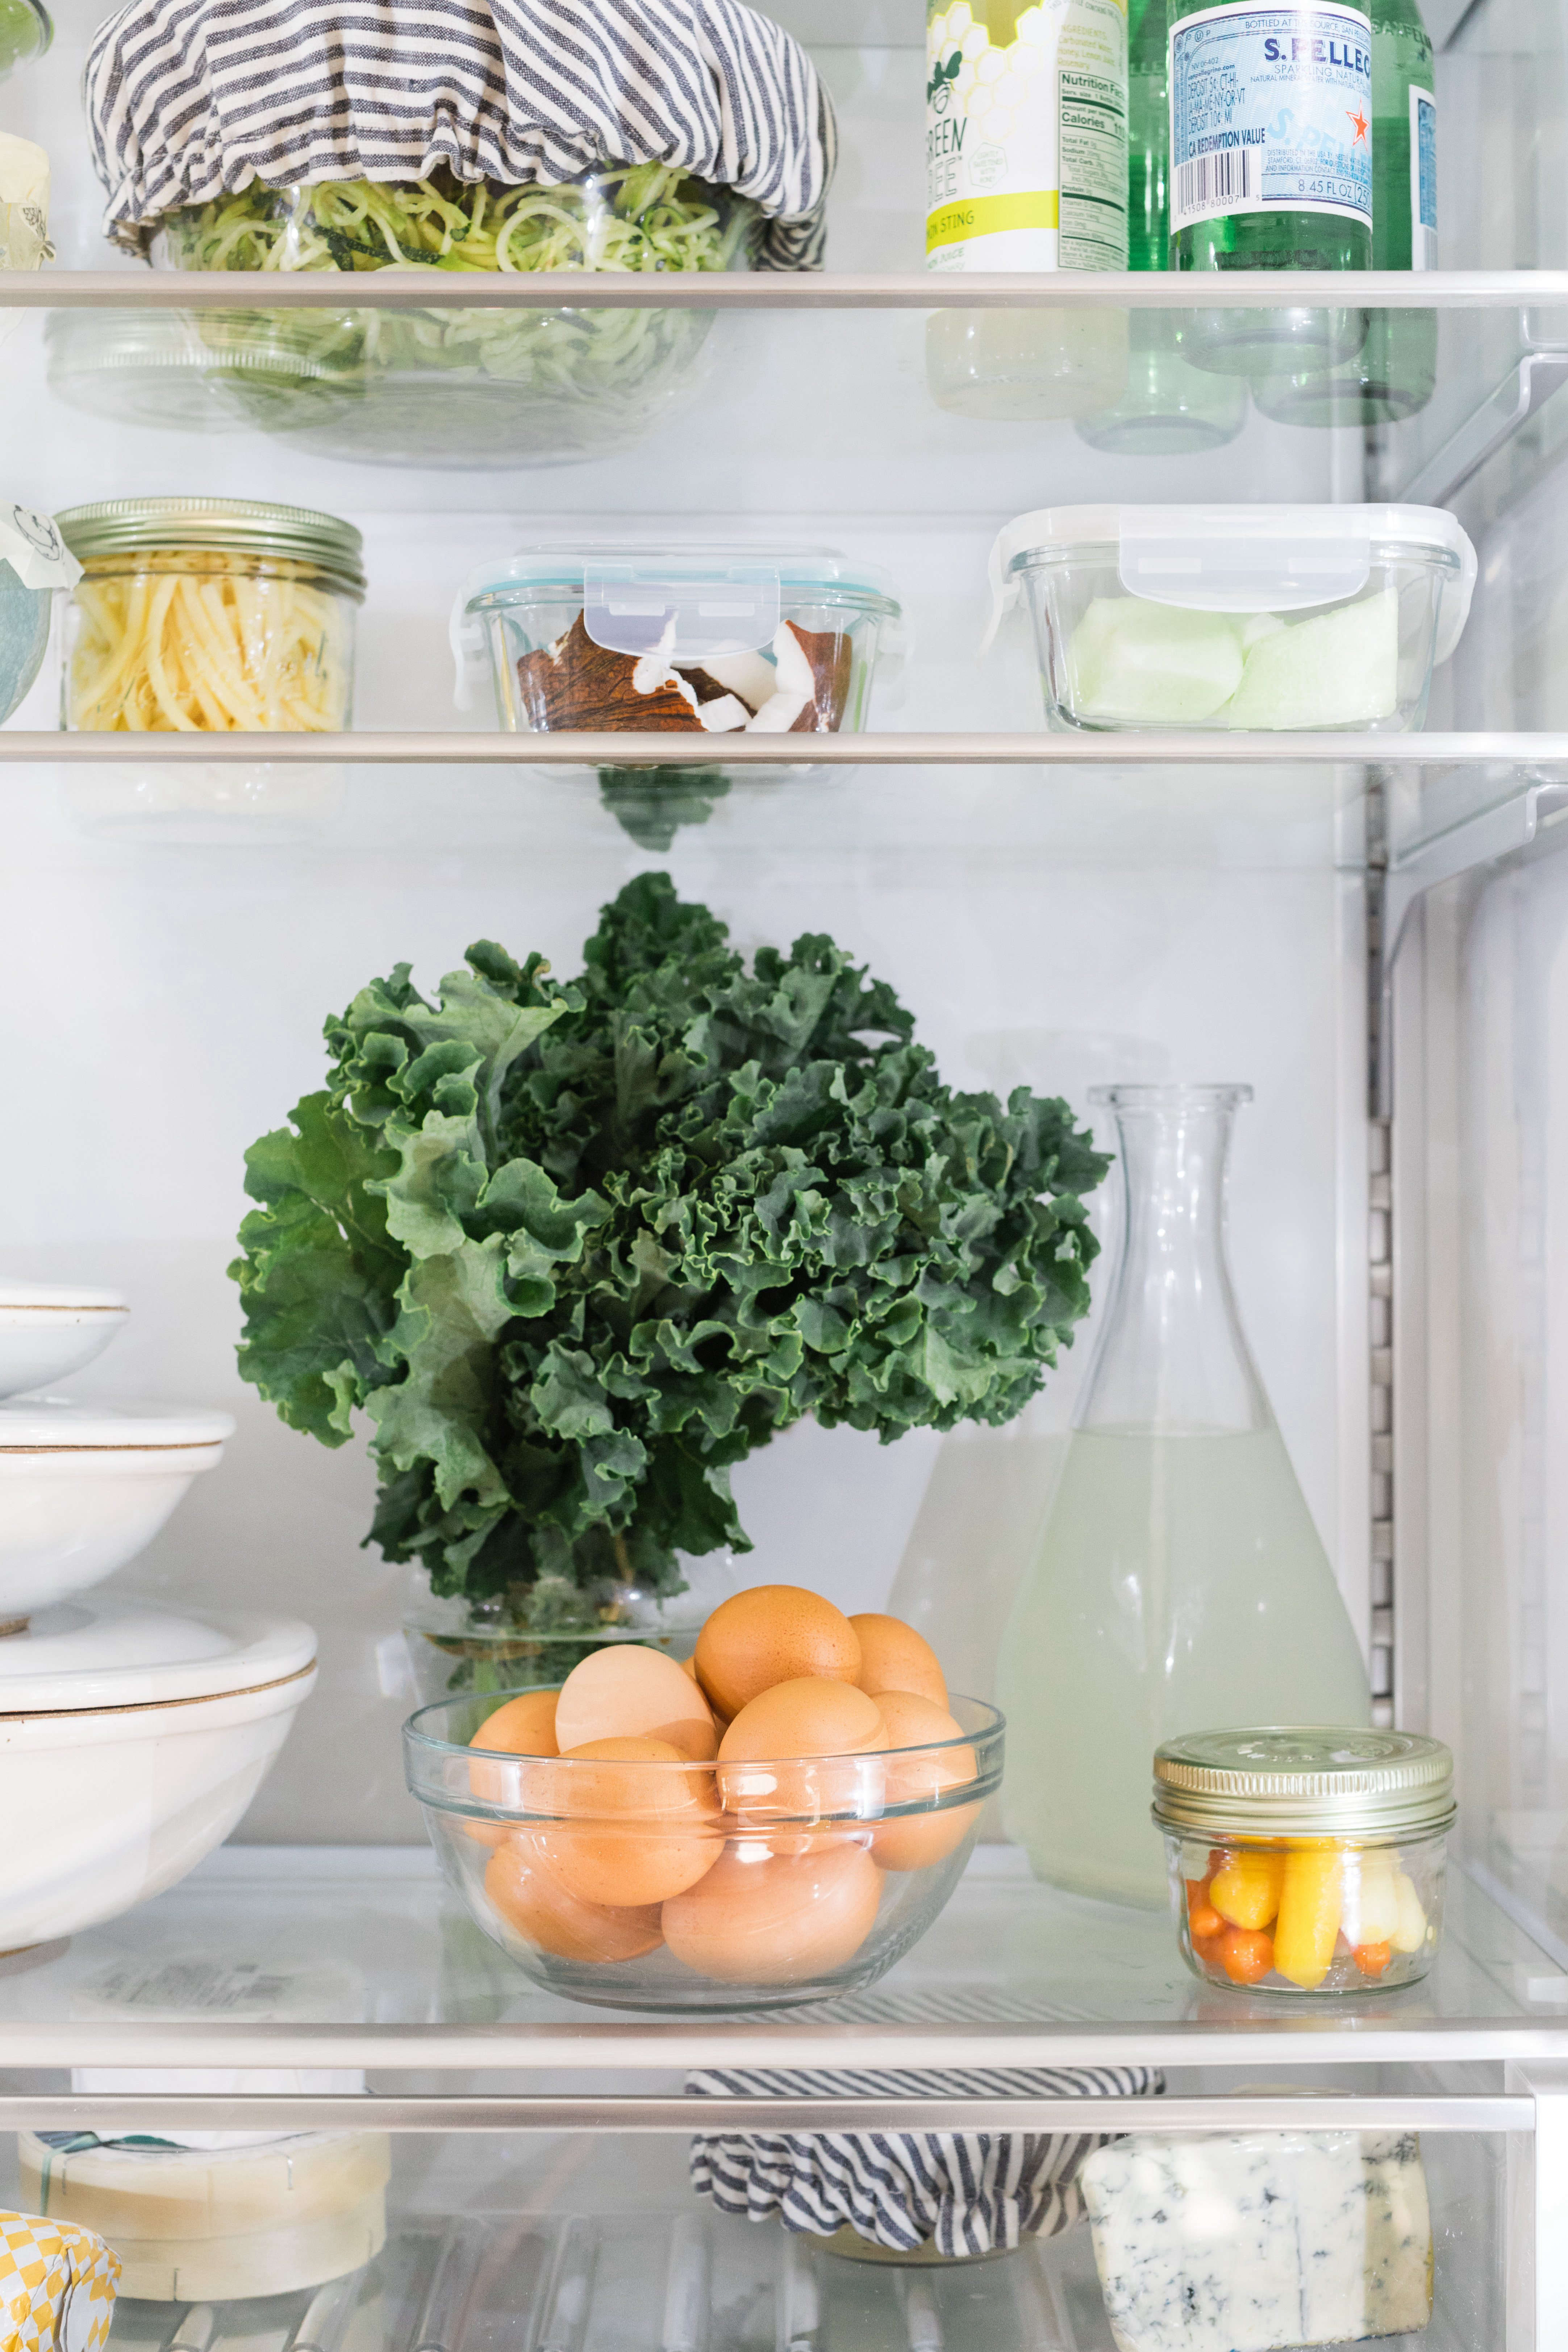 organized eco friendly refrigerator bosch kale eggs